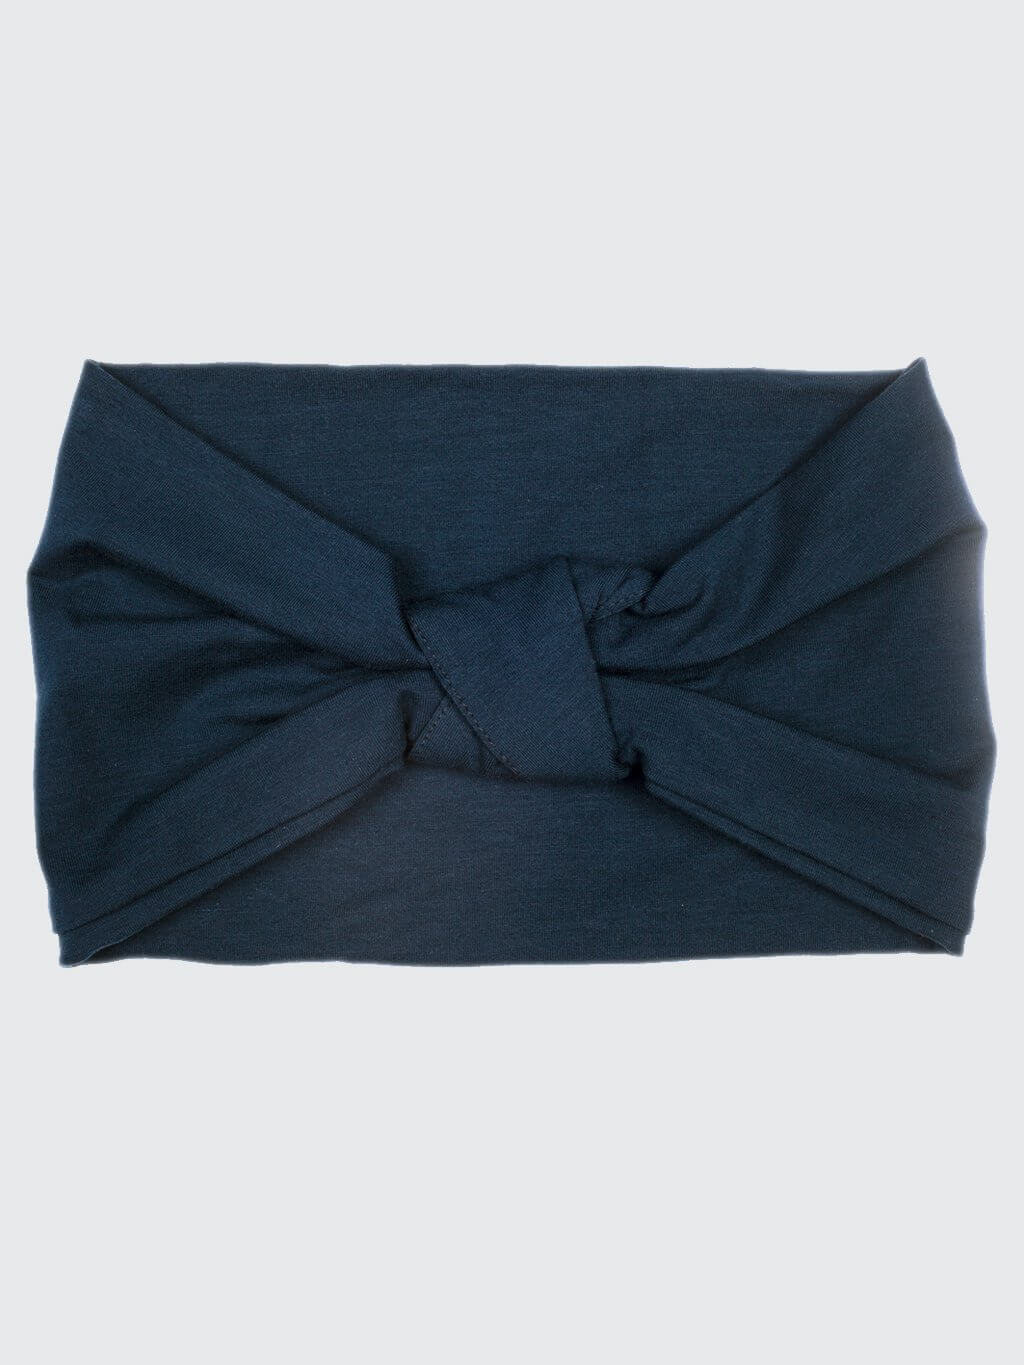 BLOM Original | Navy